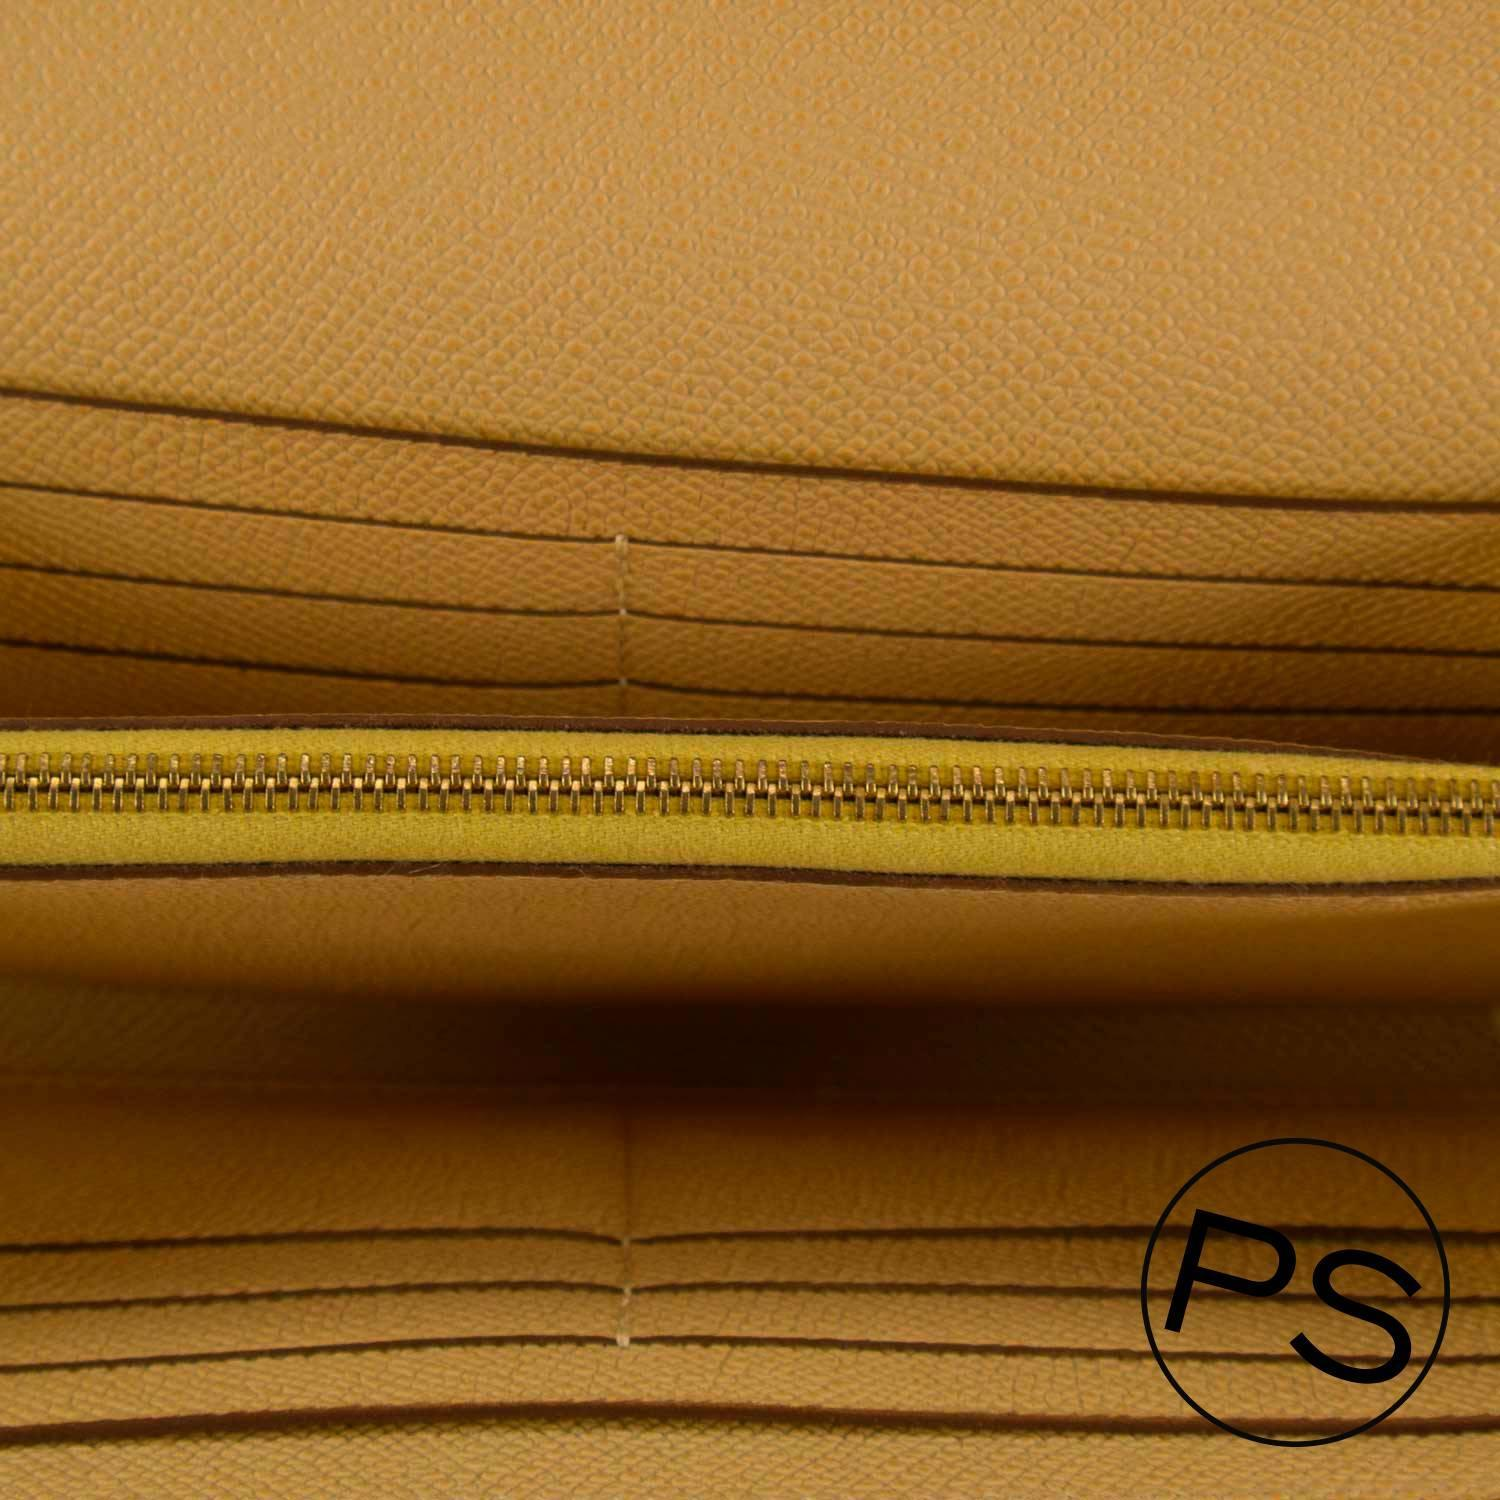 hermes kelly wallet yellow - photo #30